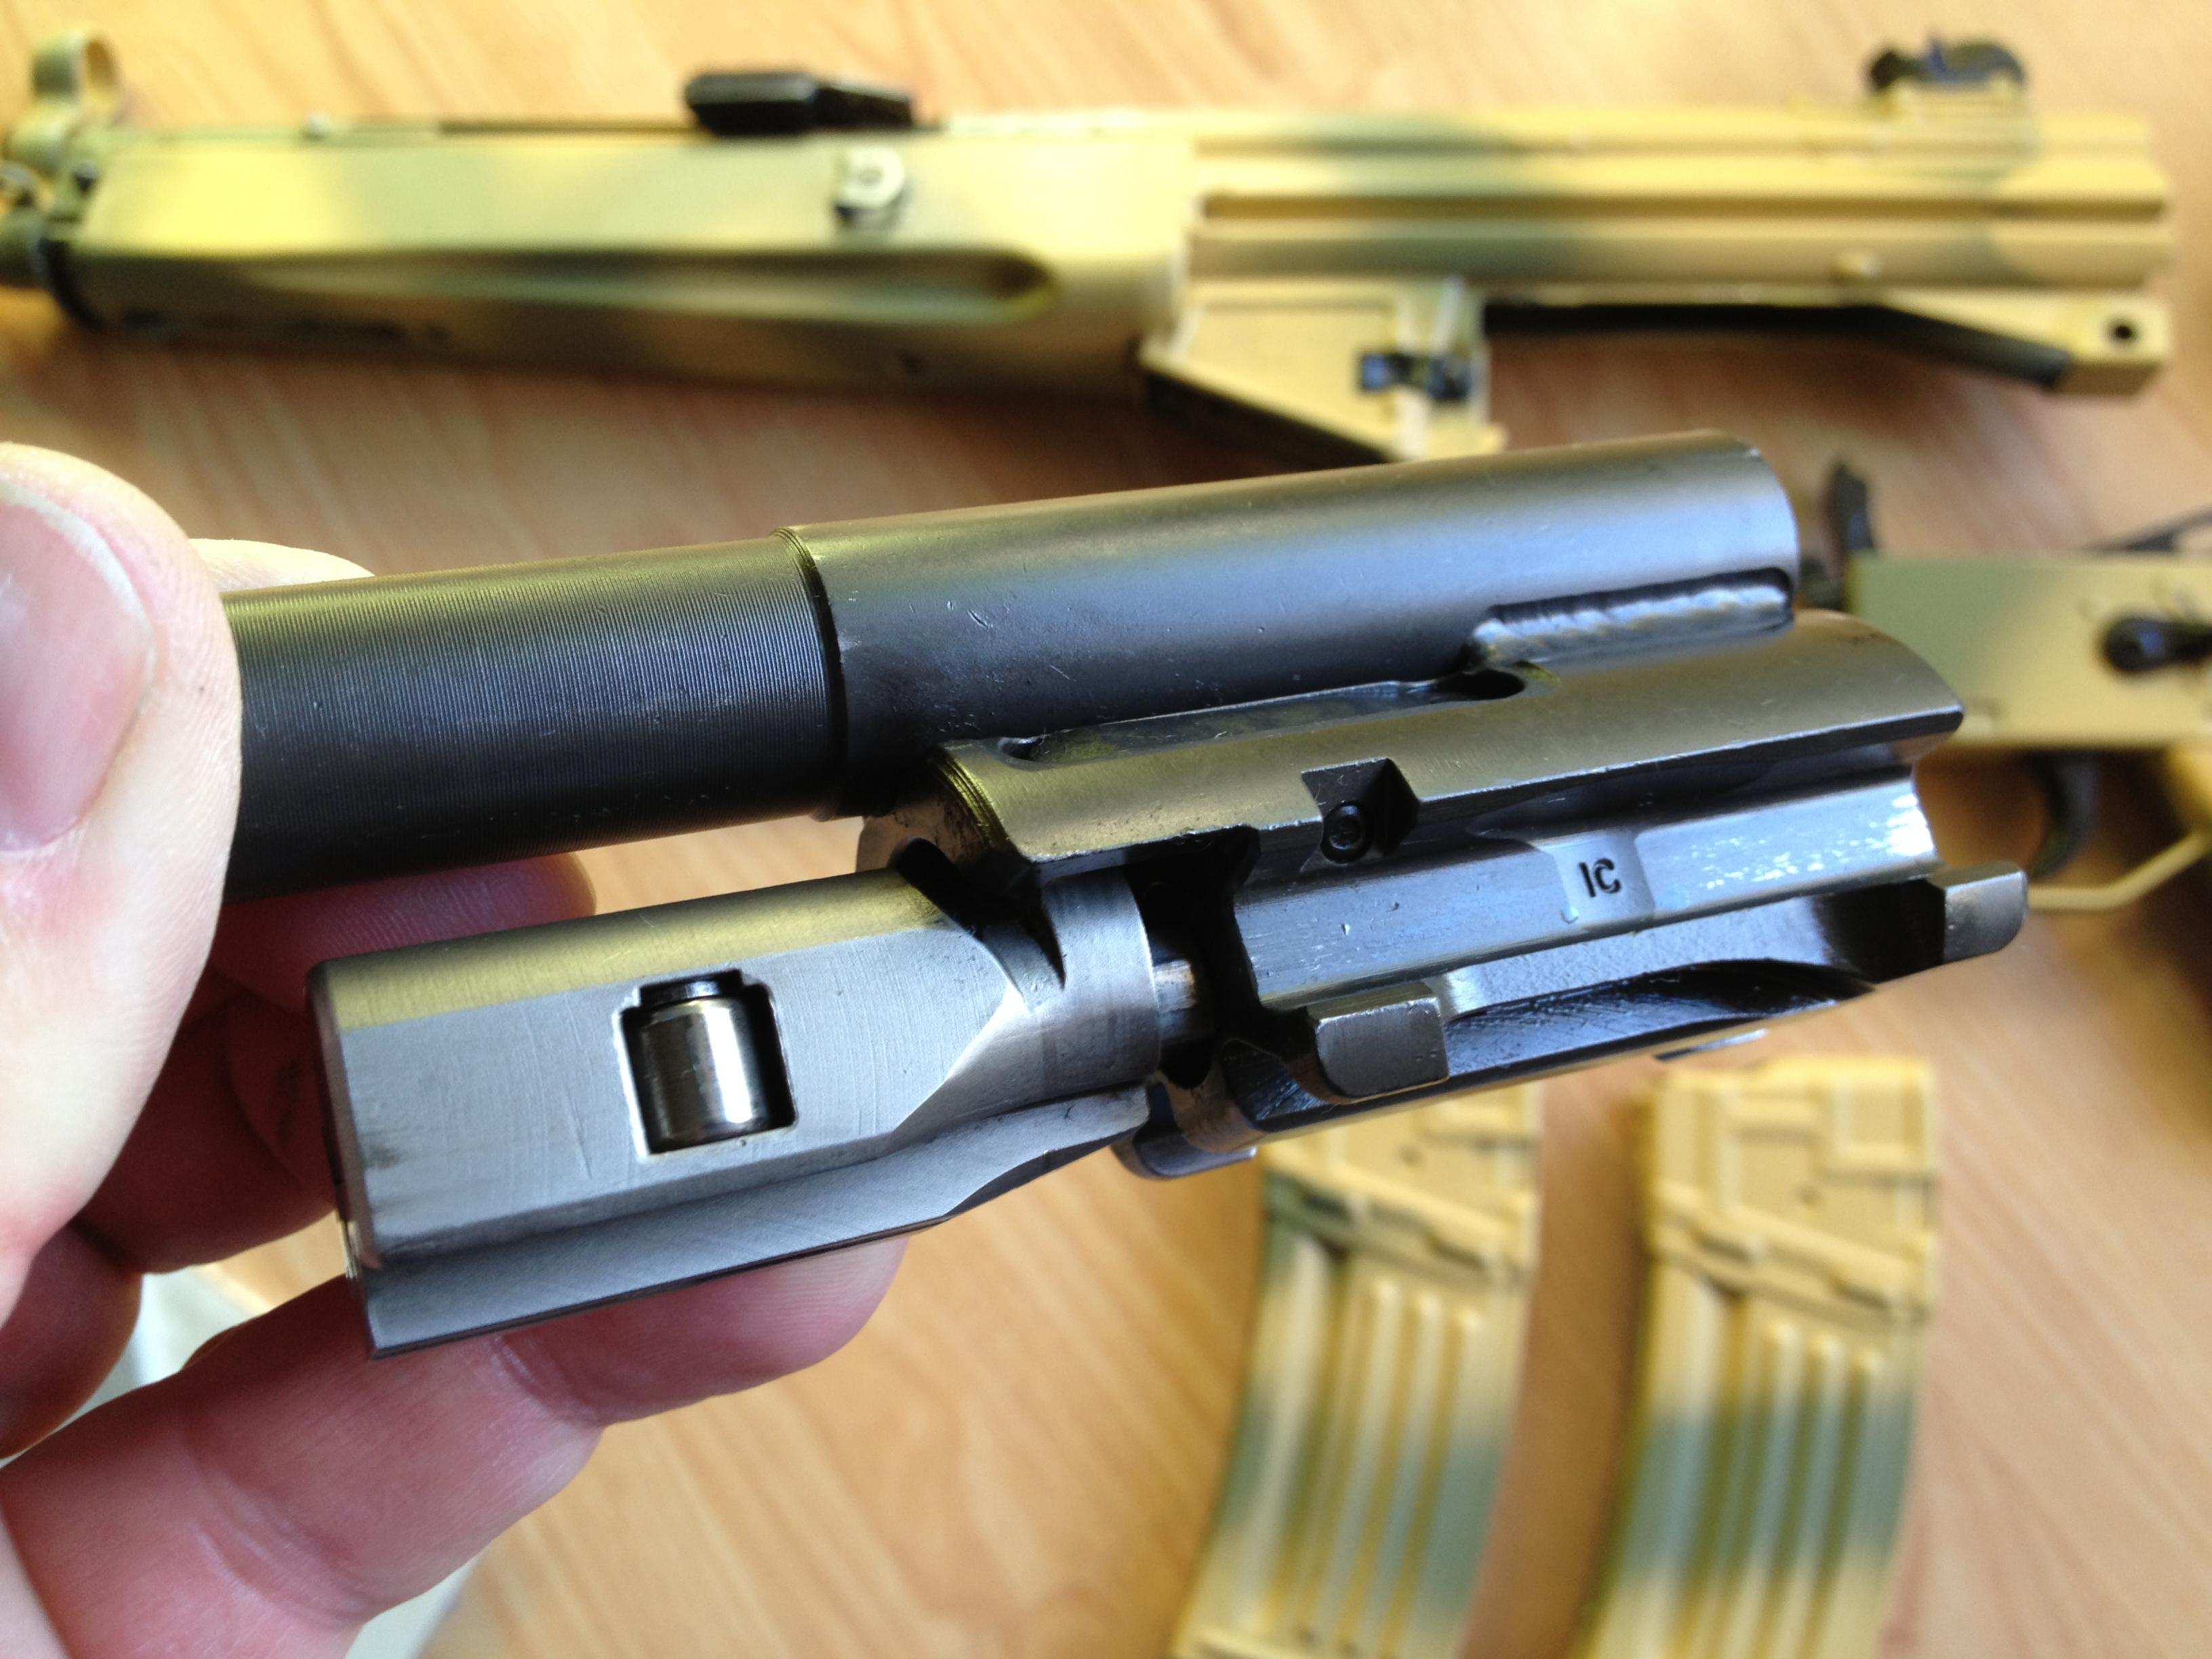 Is this the date code on the bolt carrier?-img_0858.jpg